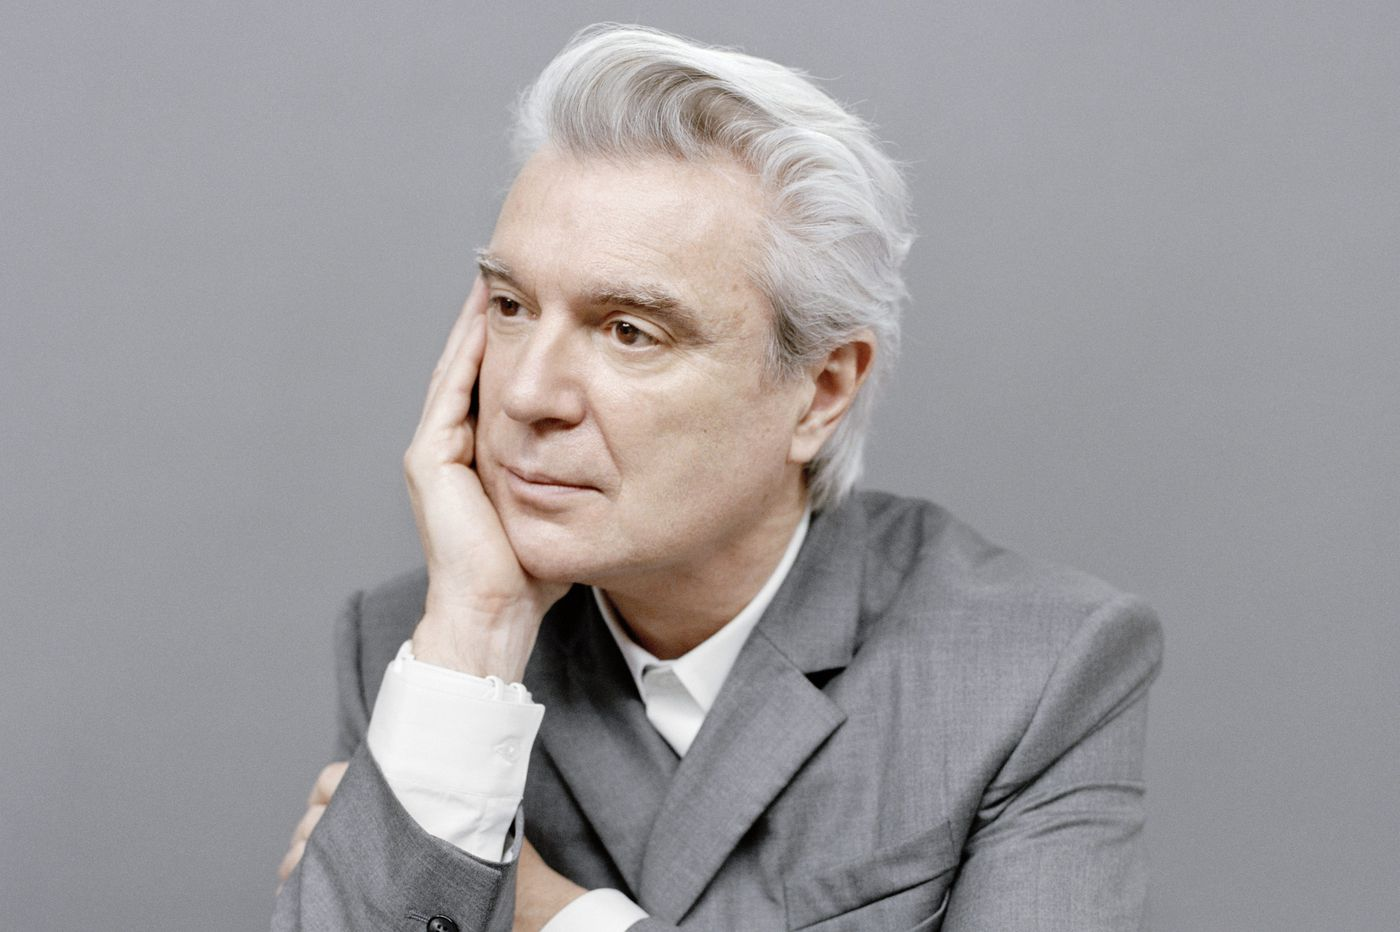 Watch: David Byrne covers Janelle Monae, honors victims of racial violence at Xponential Fest in Camden